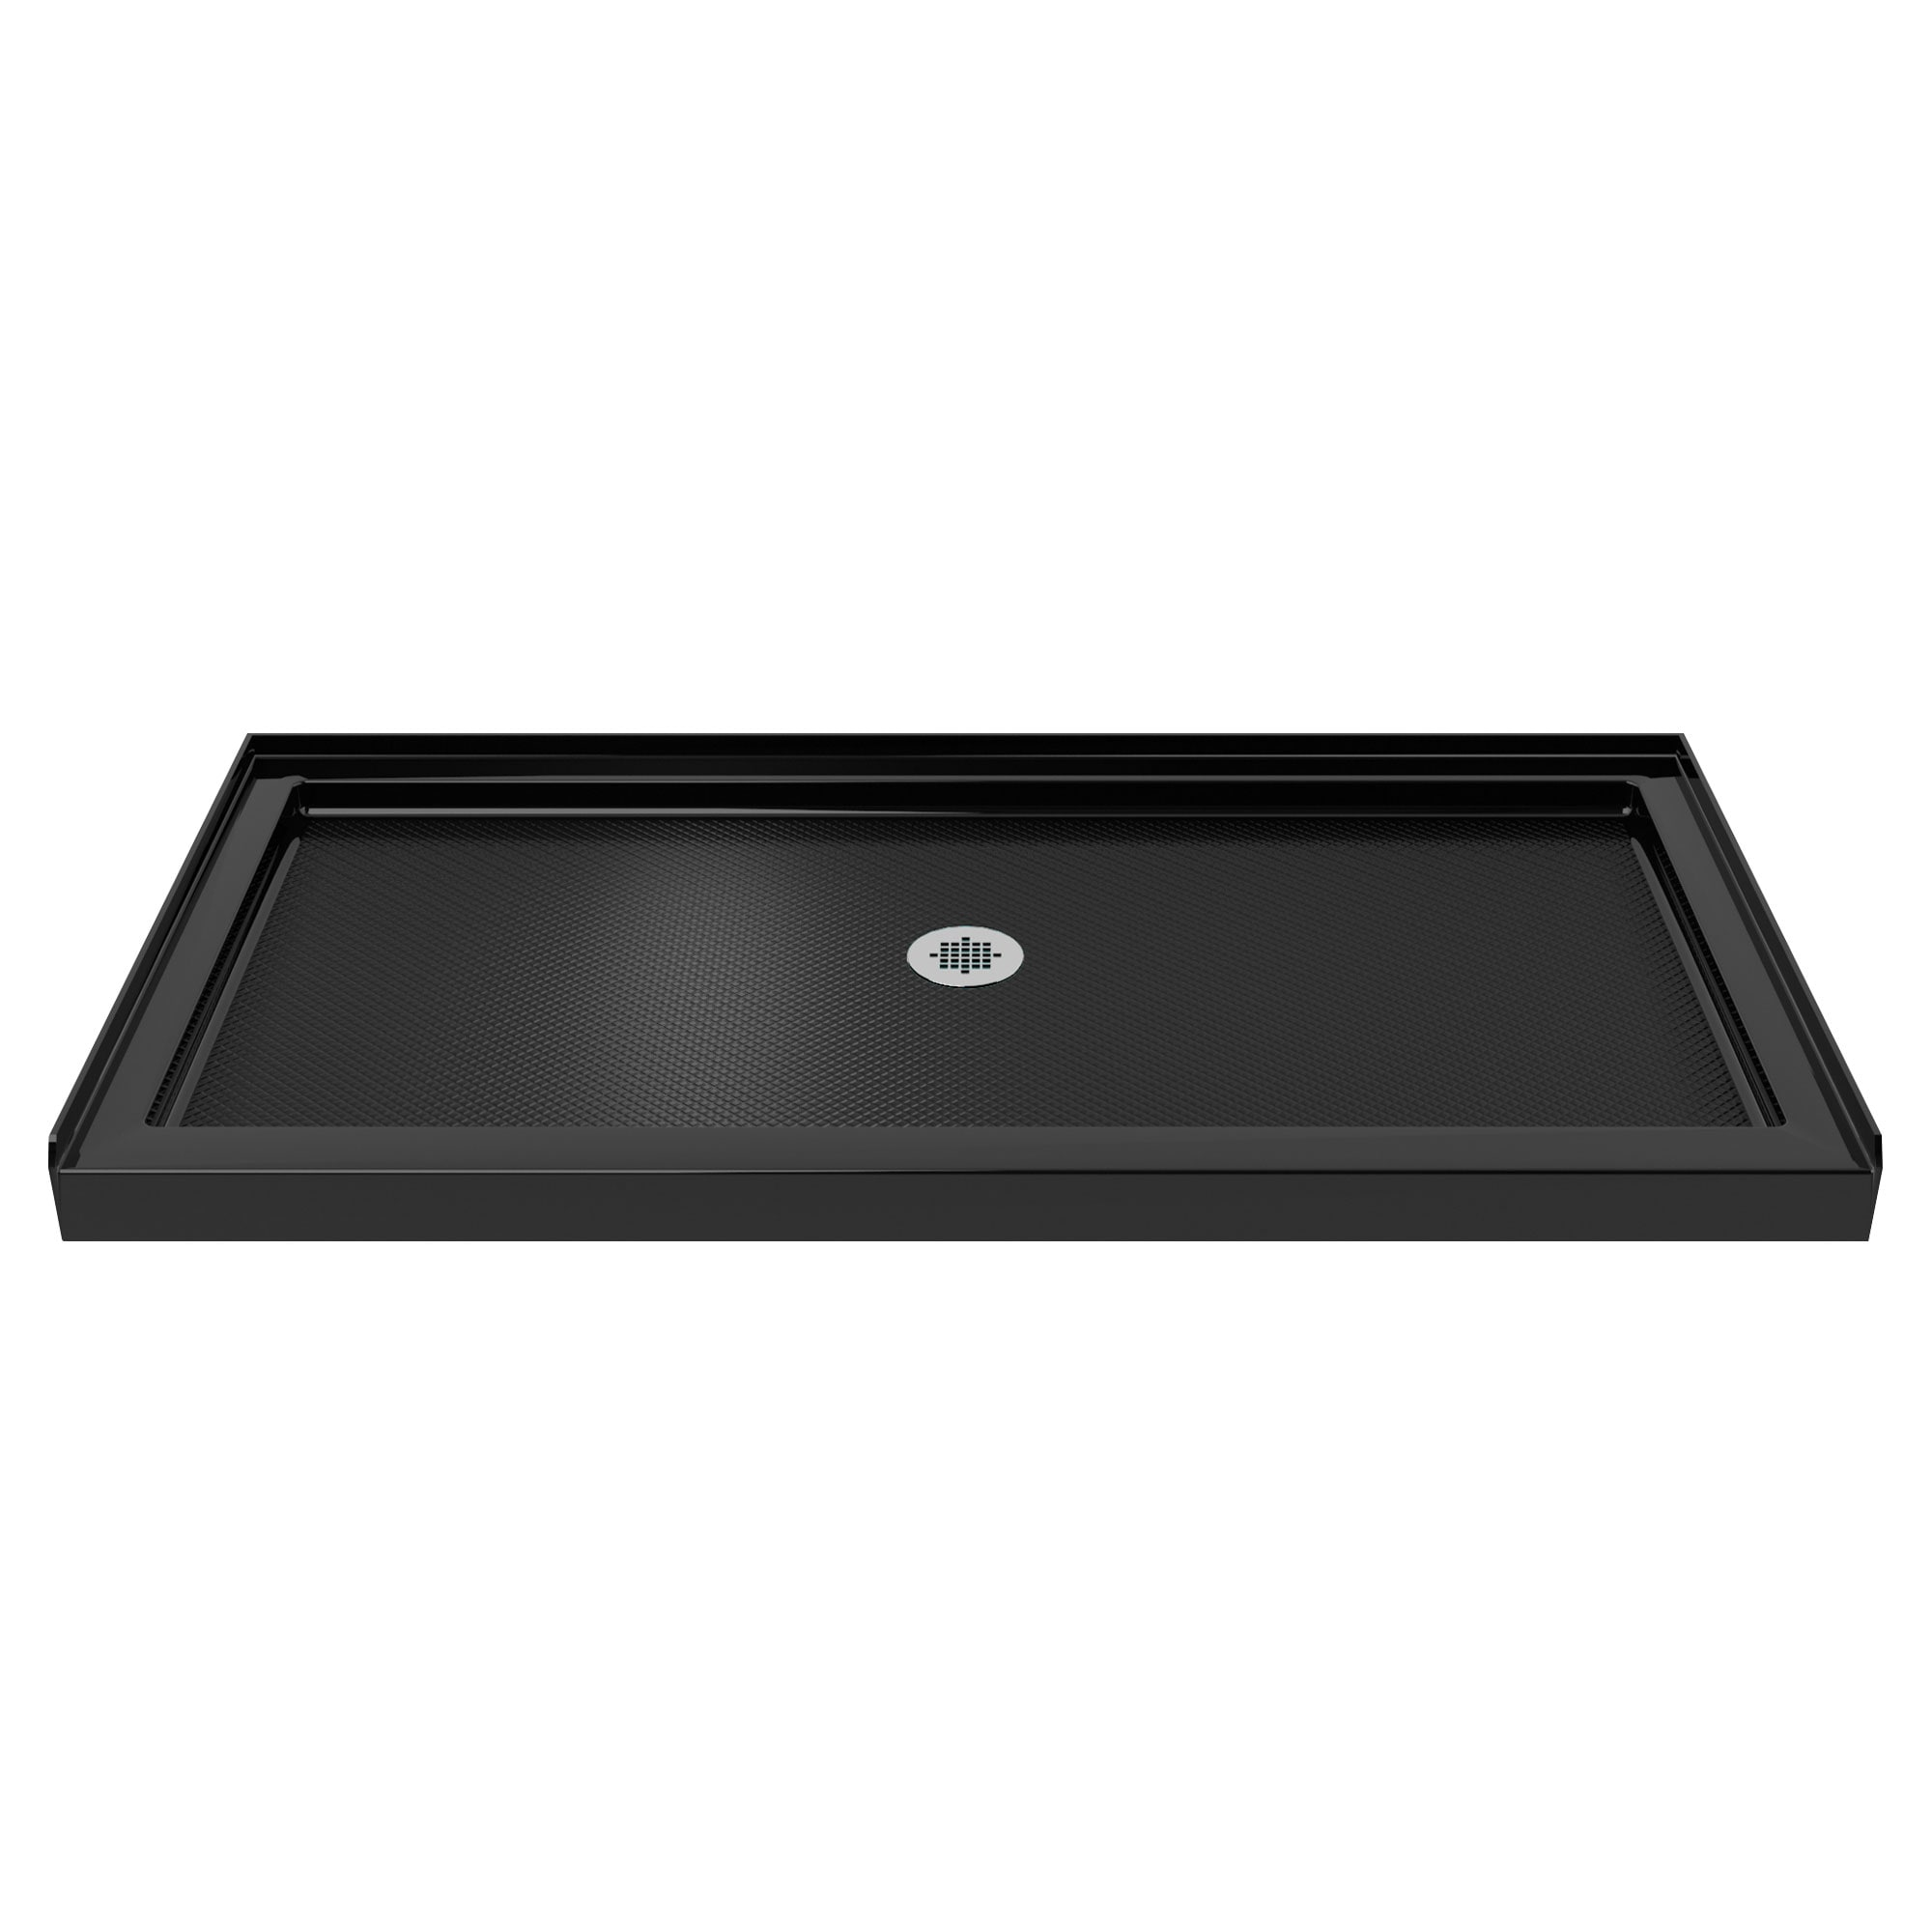 dreamline dlt 1136600 88 slimline 36 x 60 shower base in black center drain ebay. Black Bedroom Furniture Sets. Home Design Ideas